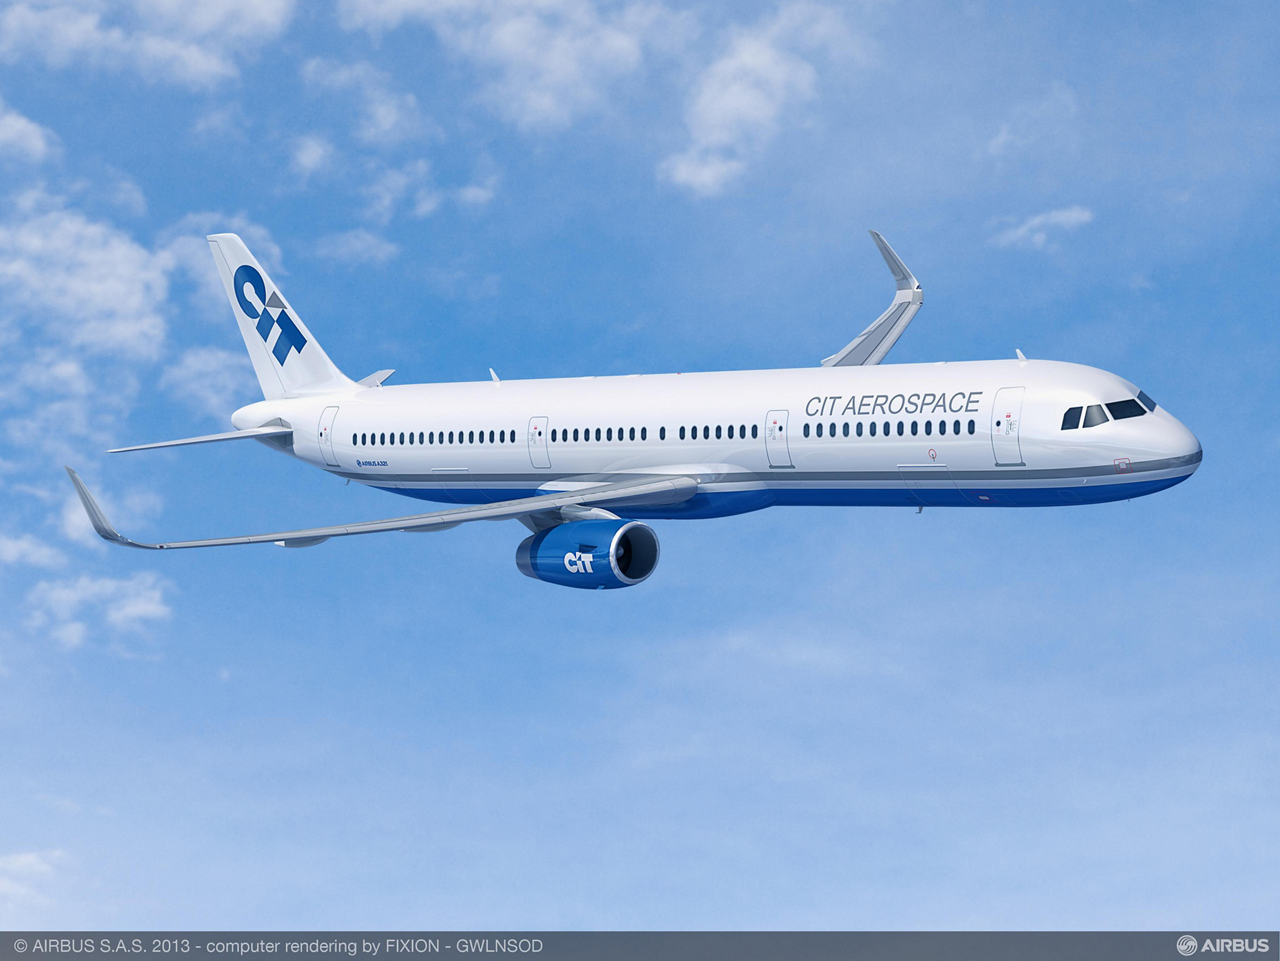 Global transportation finance leader CIT Group Inc. has placed a firm order for five more A321ceo jetliners, effectively doubling its most recent commitment for five A321ceo aircraft signed at the 2014 Farnborough International Airshow and firmed up in November 2014